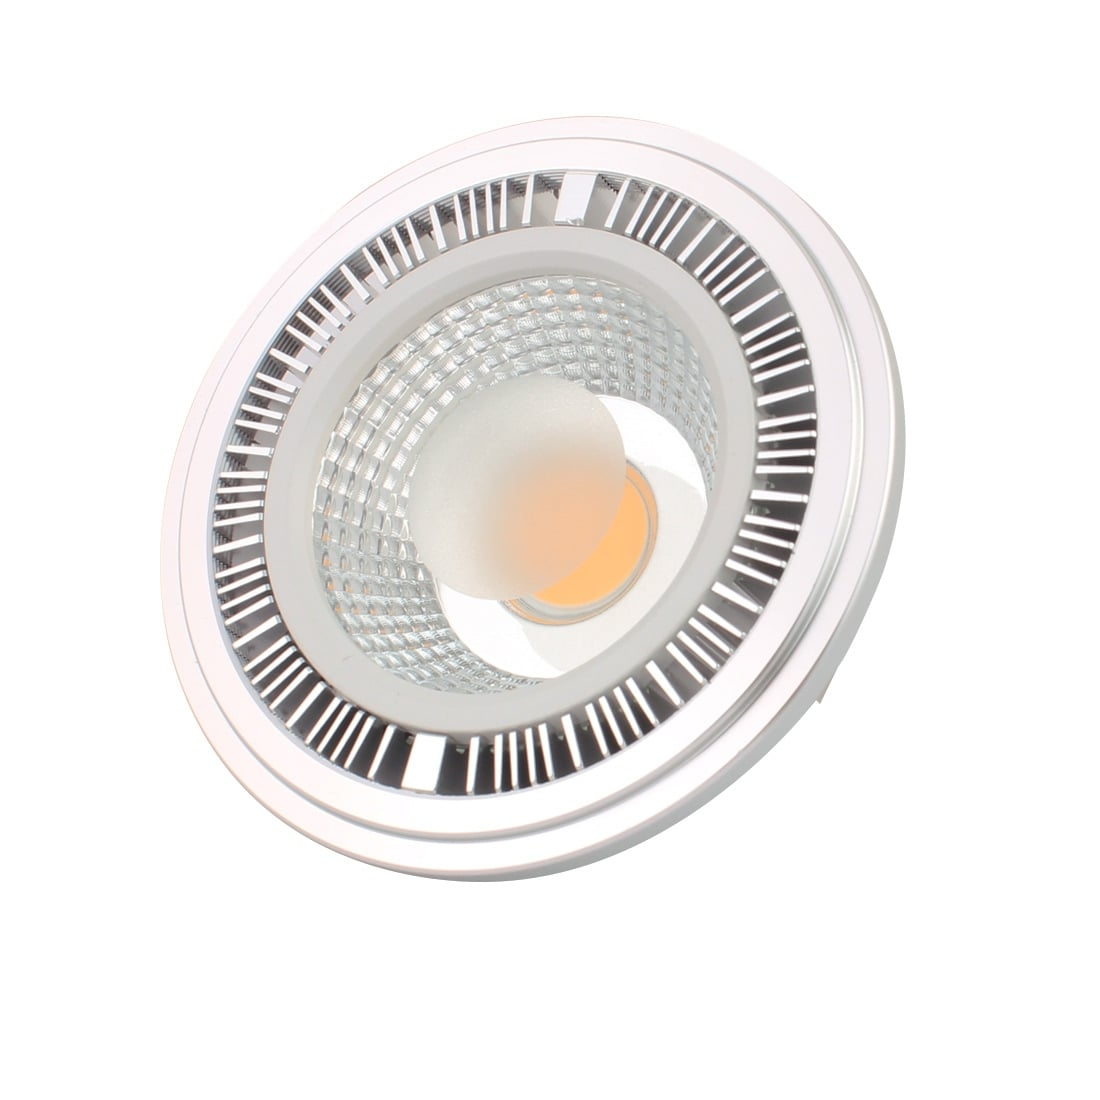 Led G53 Ac 110v 5w 3000k G53 Dimmable Recessed Cob Led Bulb High Head Ceiling Lamp Ar111